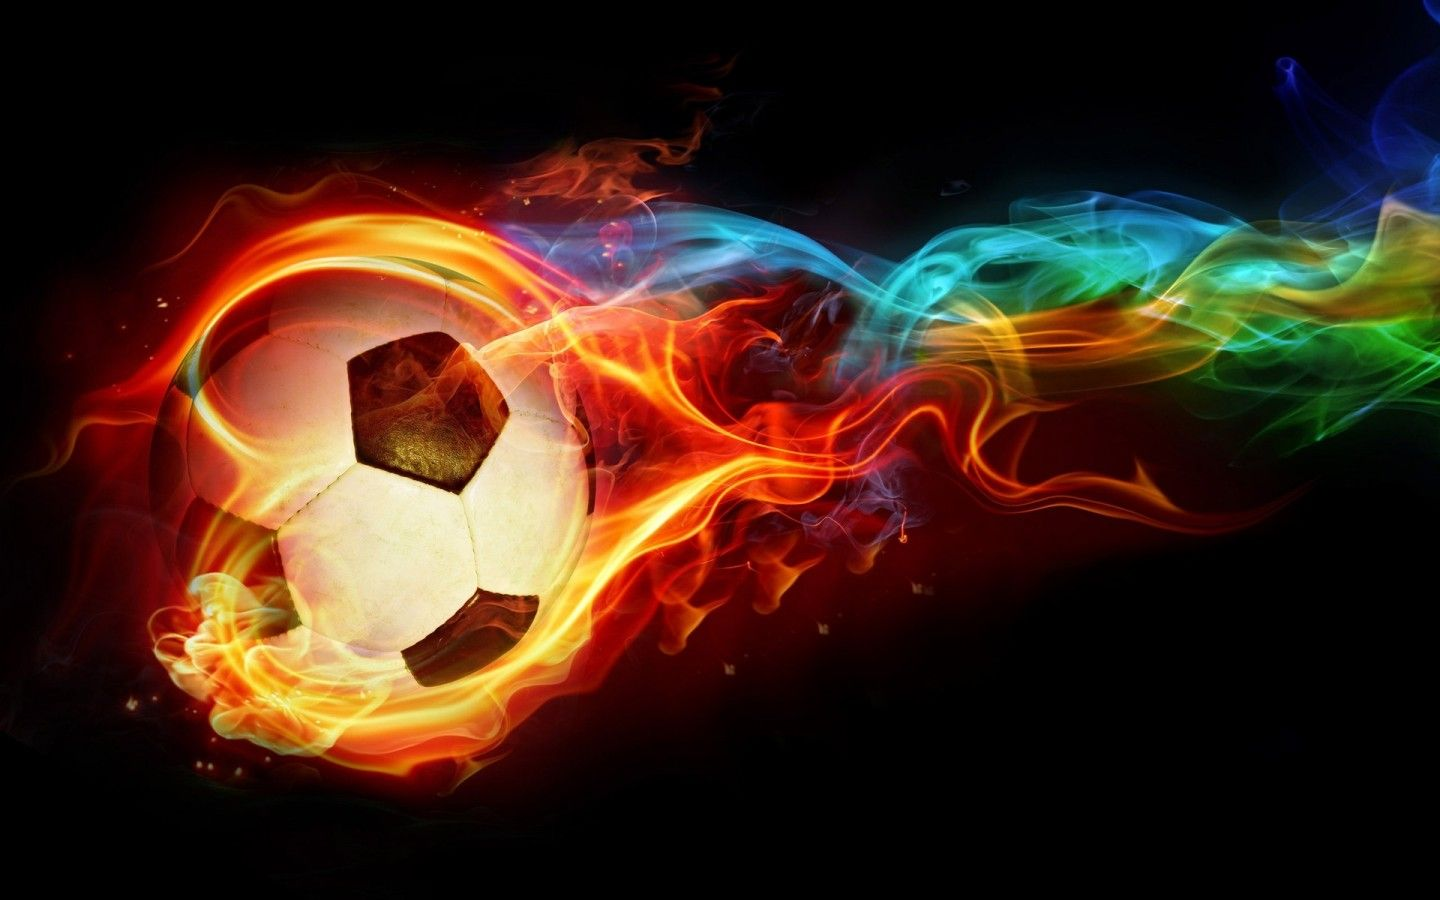 Cool Soccer Ball Backgrounds Hd Images 3 Jpg 1440 900 Soccer Ball Soccer Soccer Backgrounds